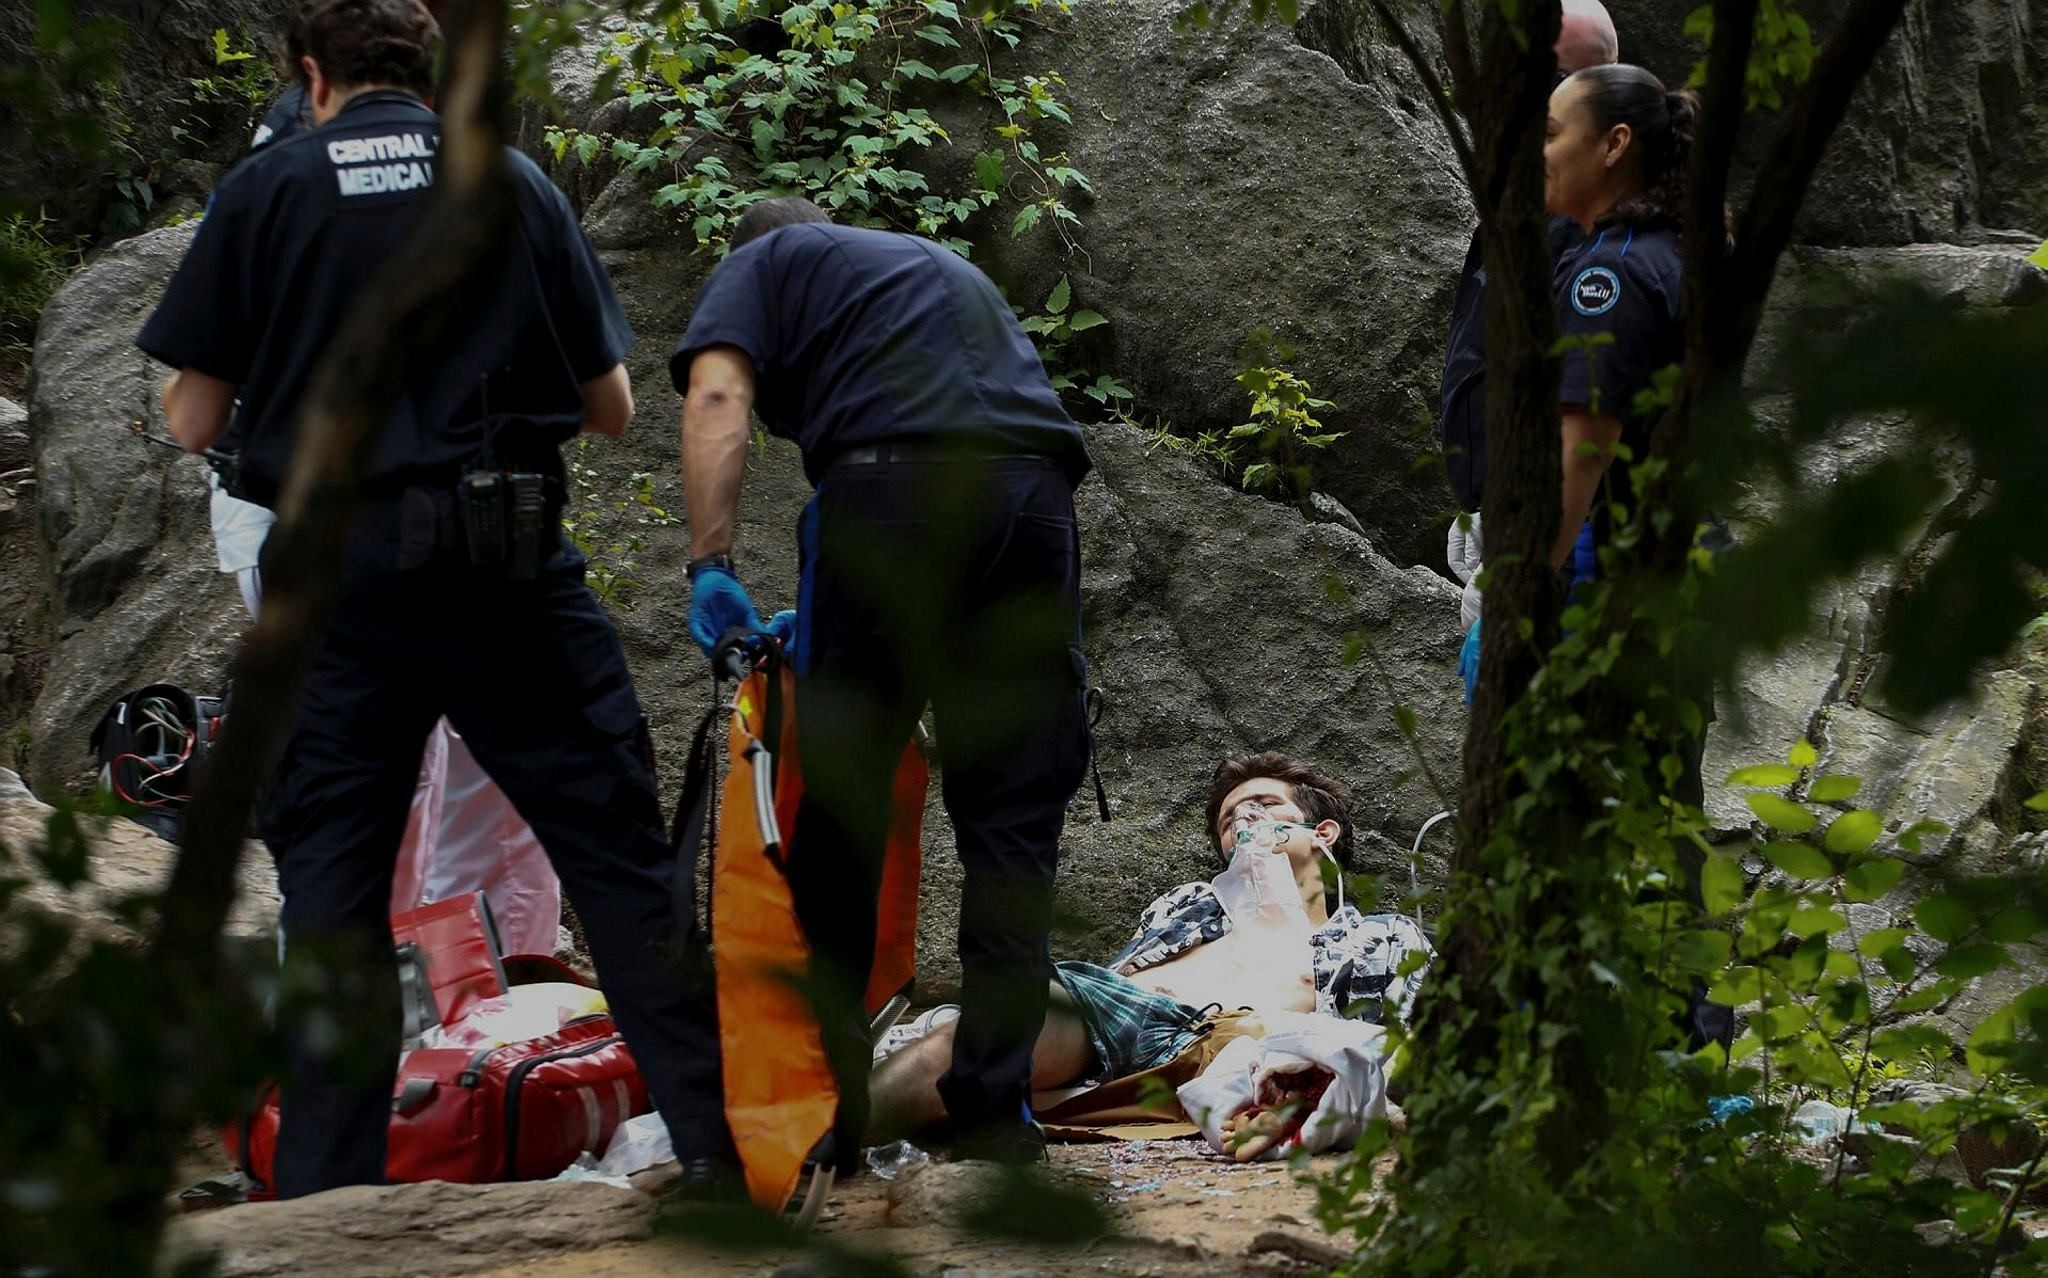 A critically injured man lies on the ground as he receives assistance after an explosion was detonated at Central Park in New York on July 3, 2016. (AFP Photo)